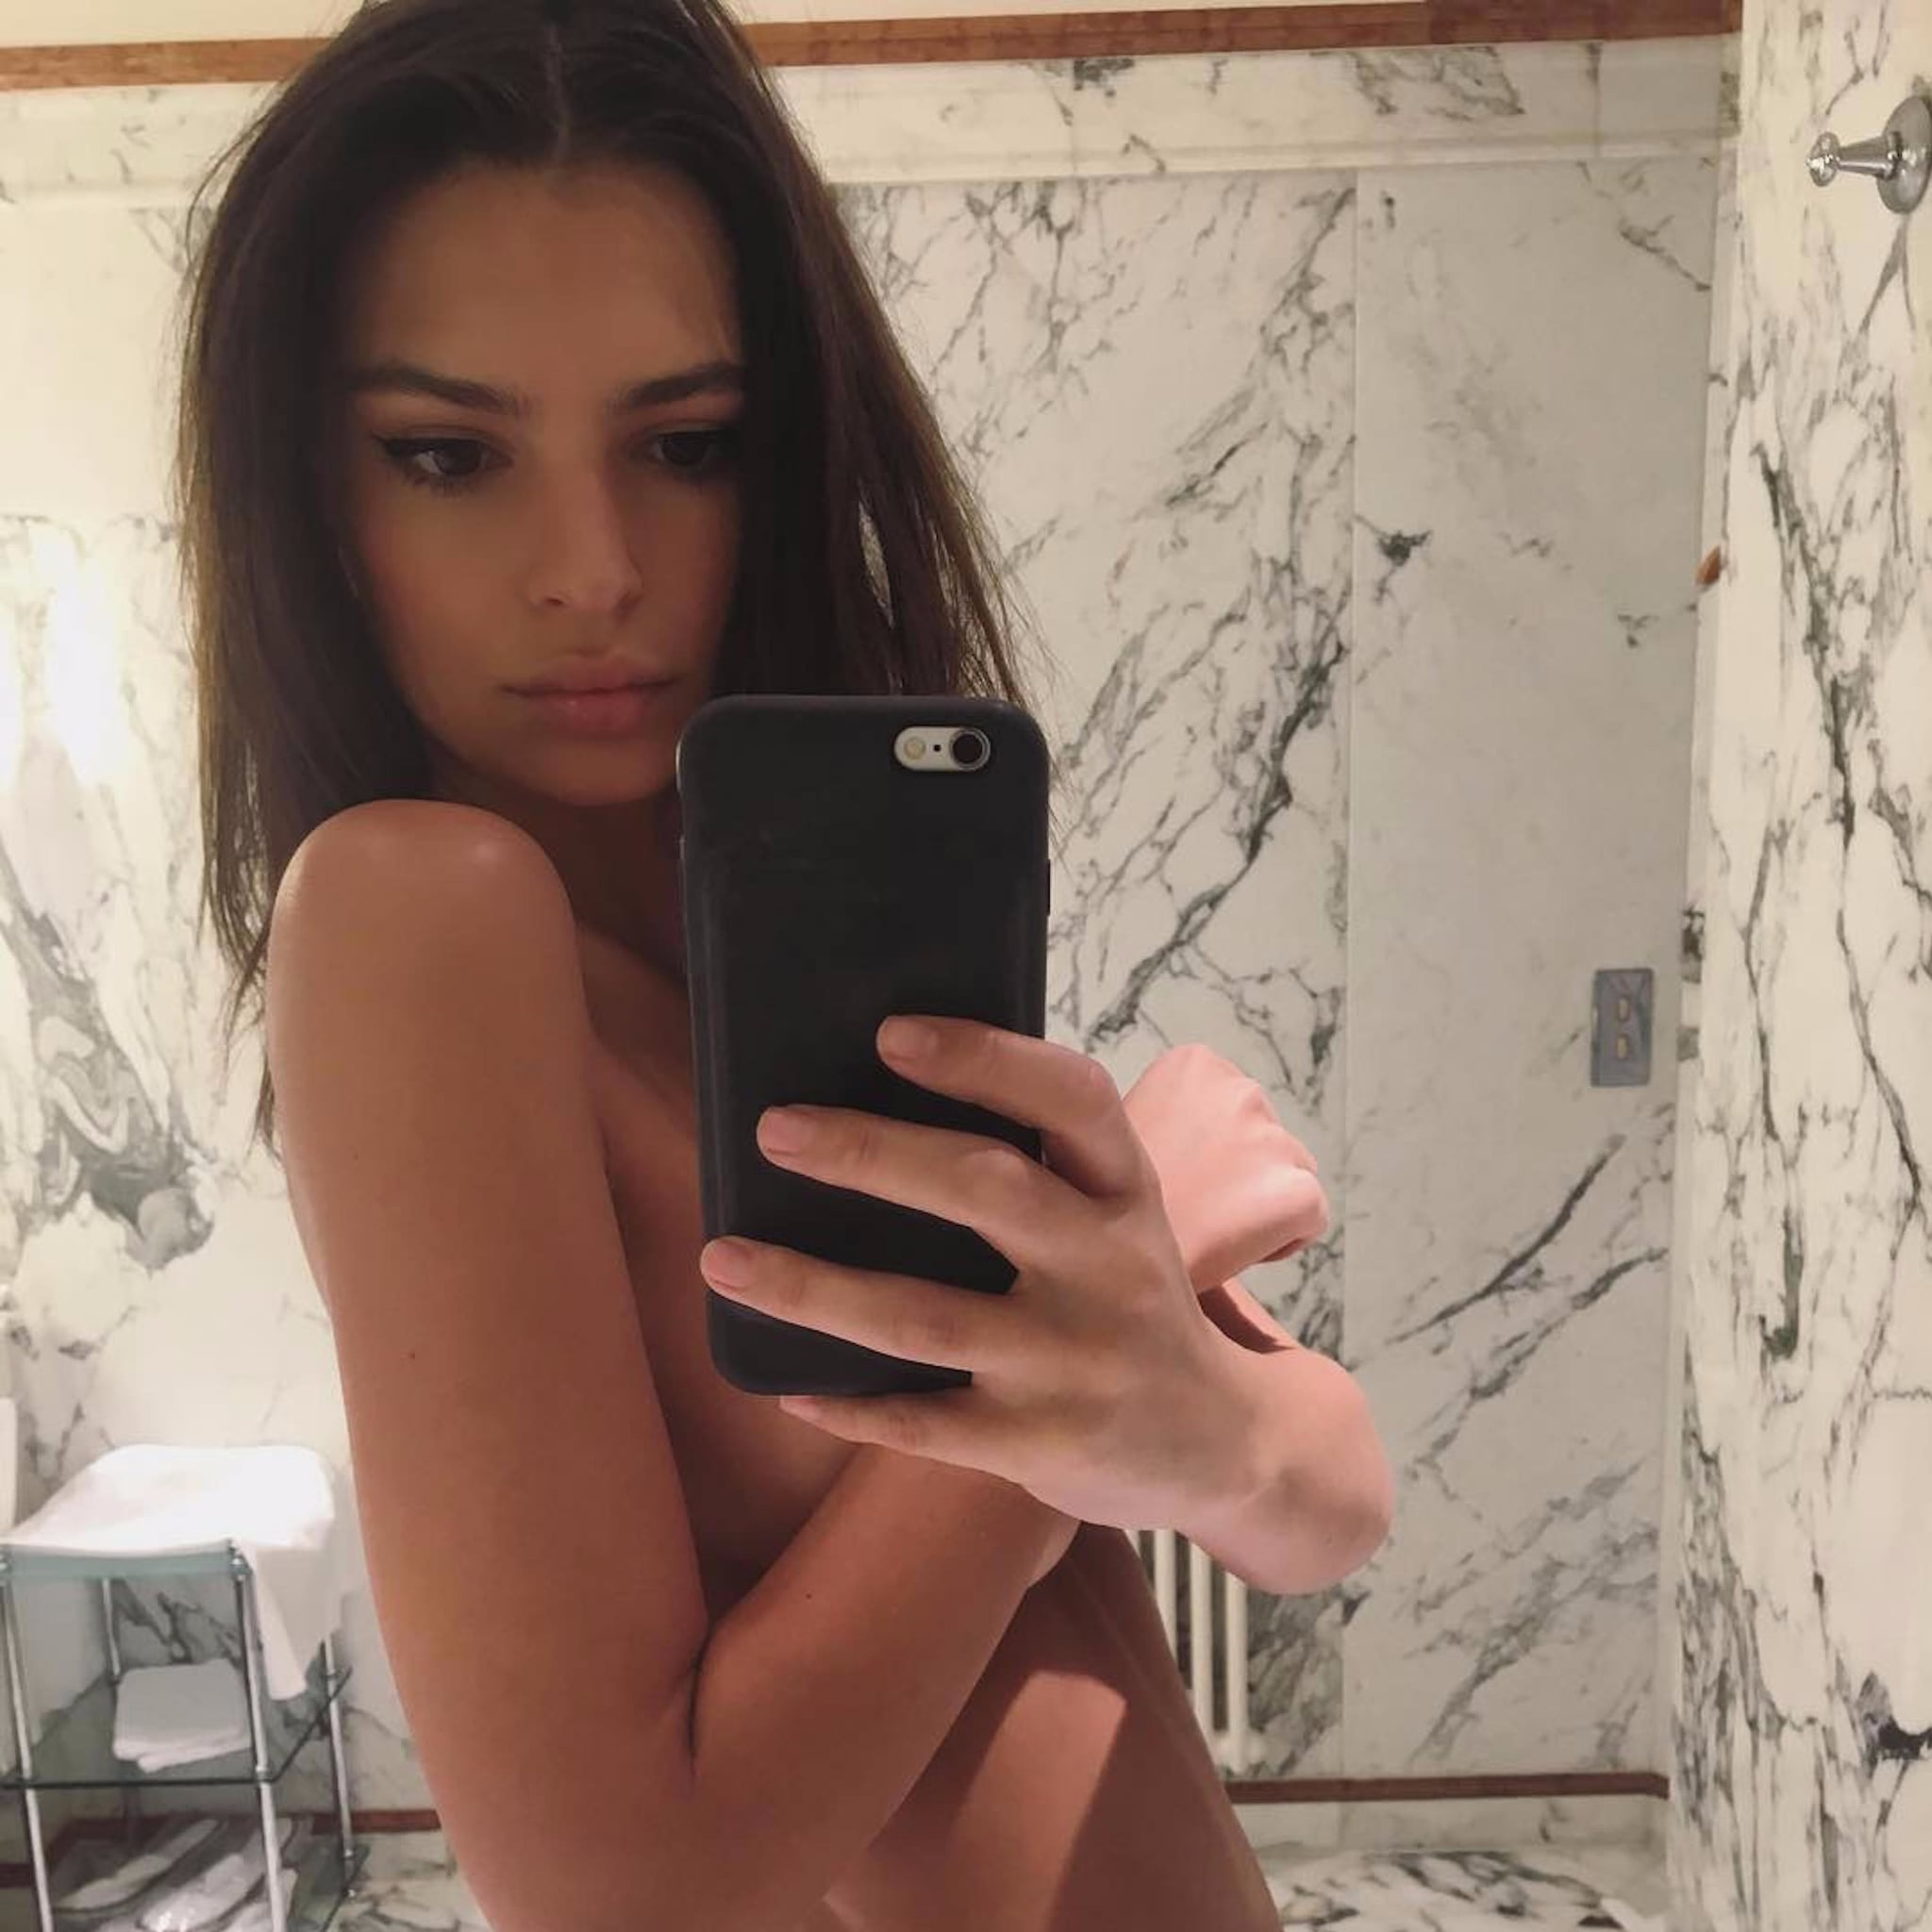 Image result for hot sexy women selfies